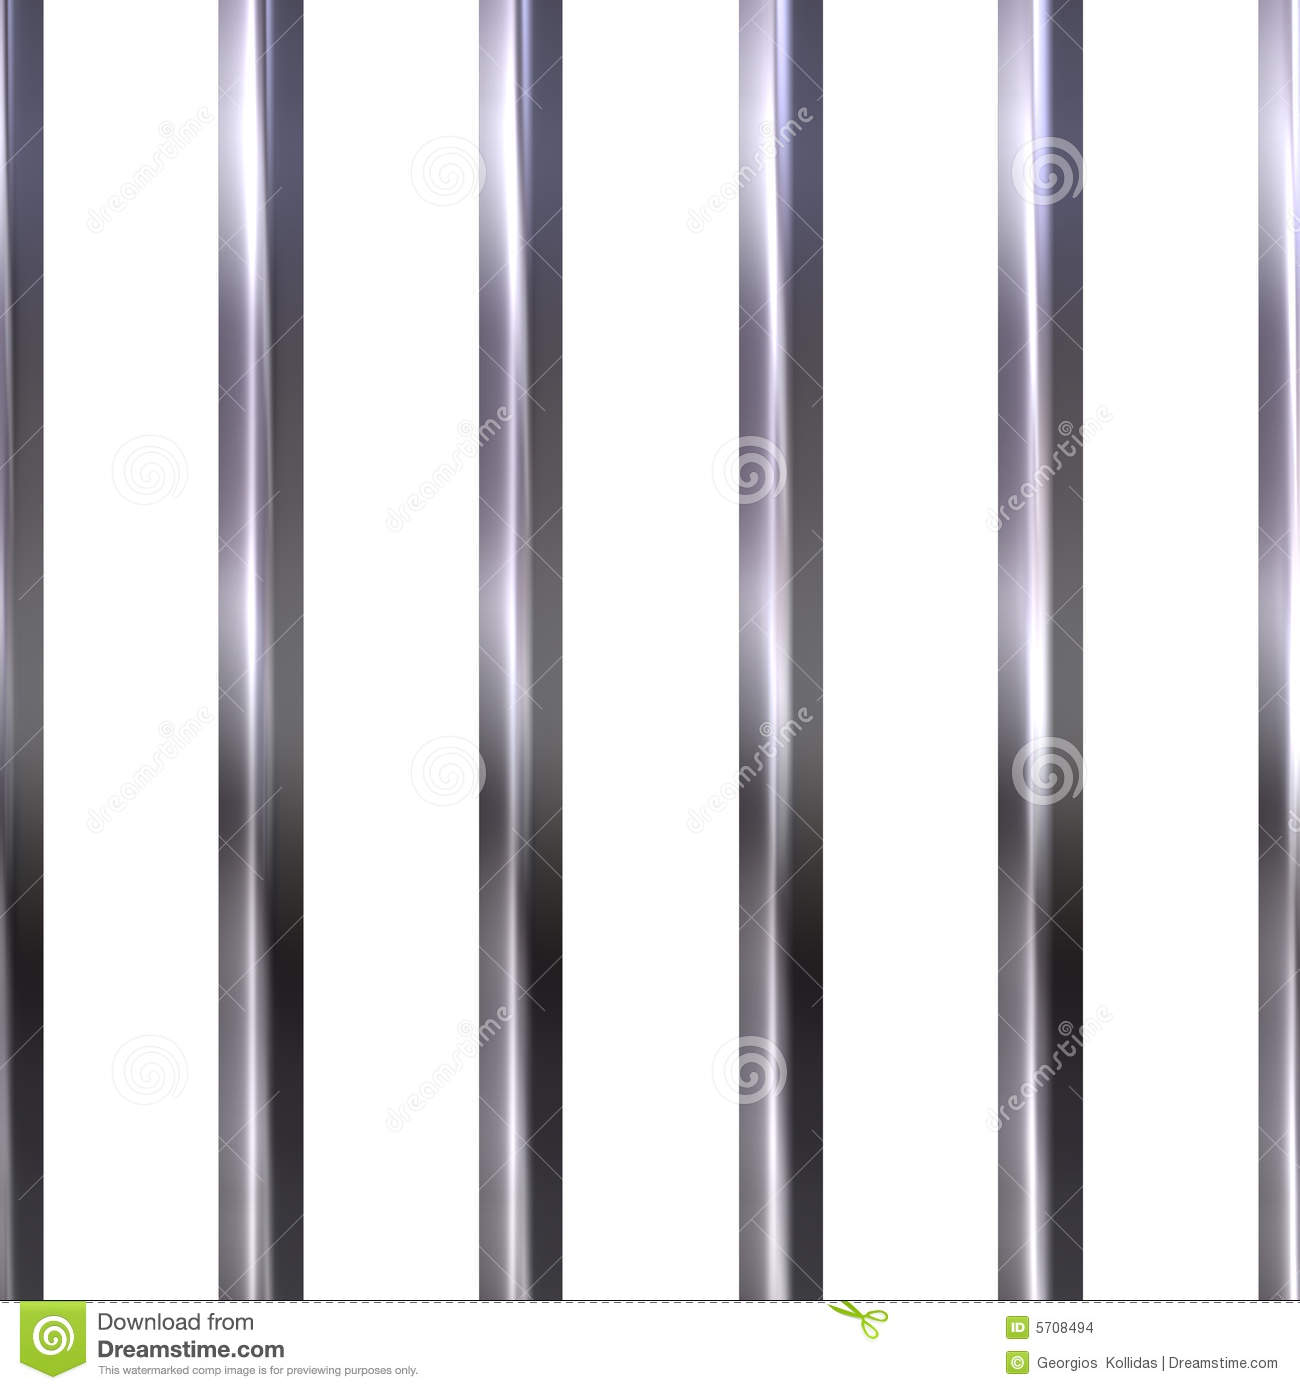 Jail Bars Clipart Prison bars isolated in white.